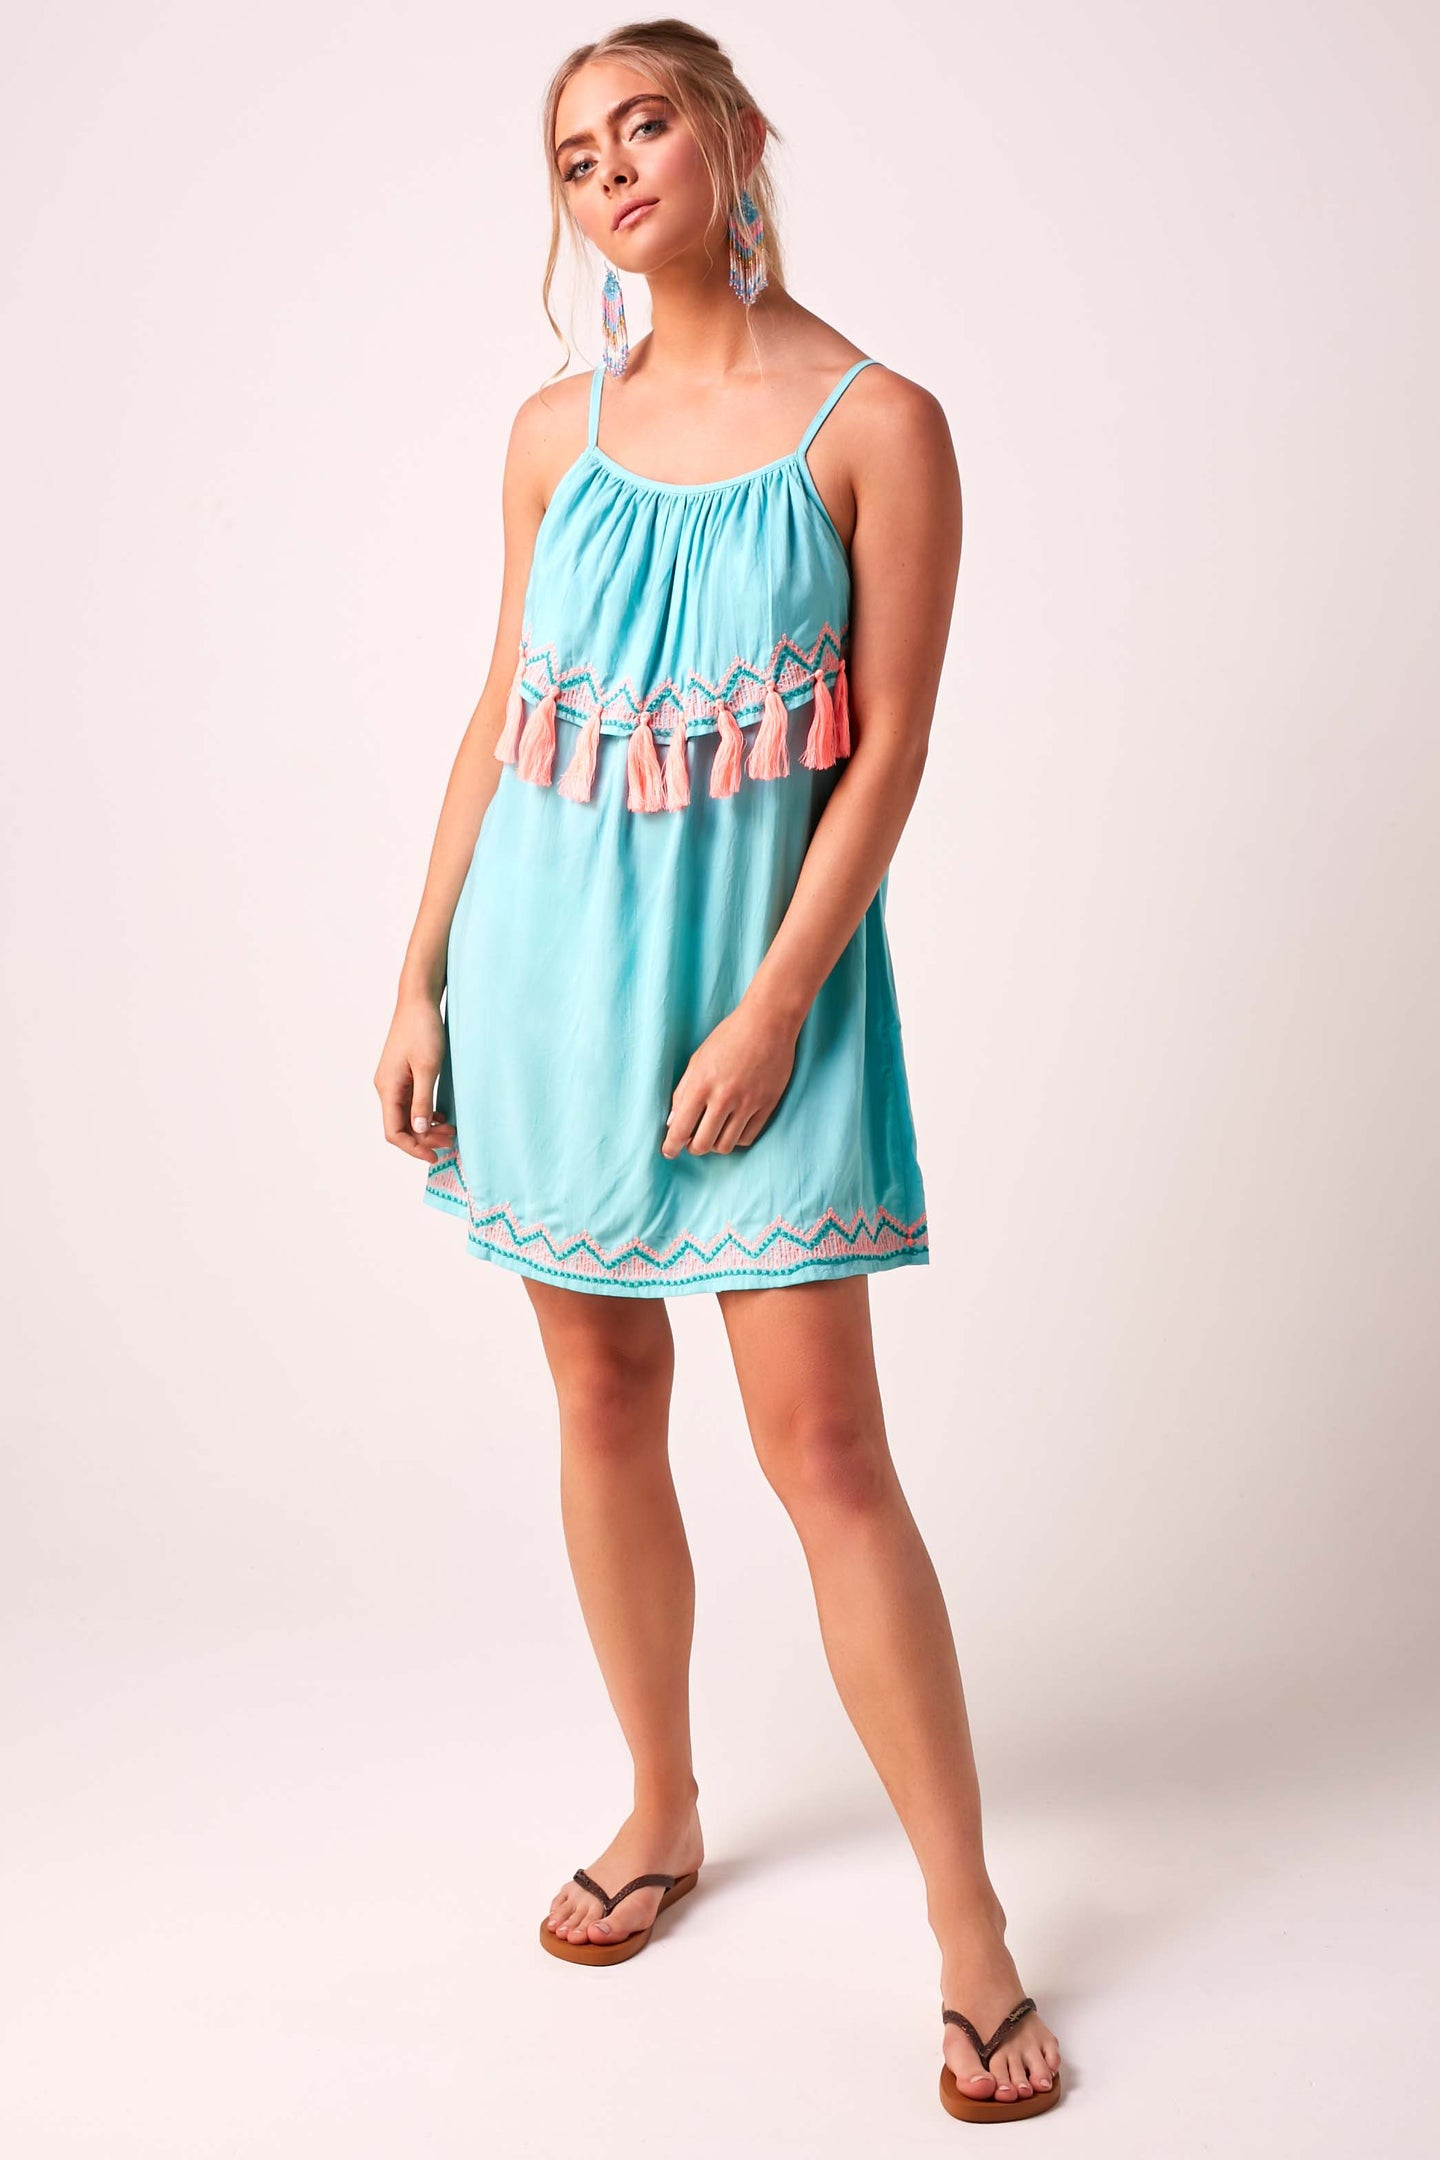 Tassel Baby Doll Dress Aqua